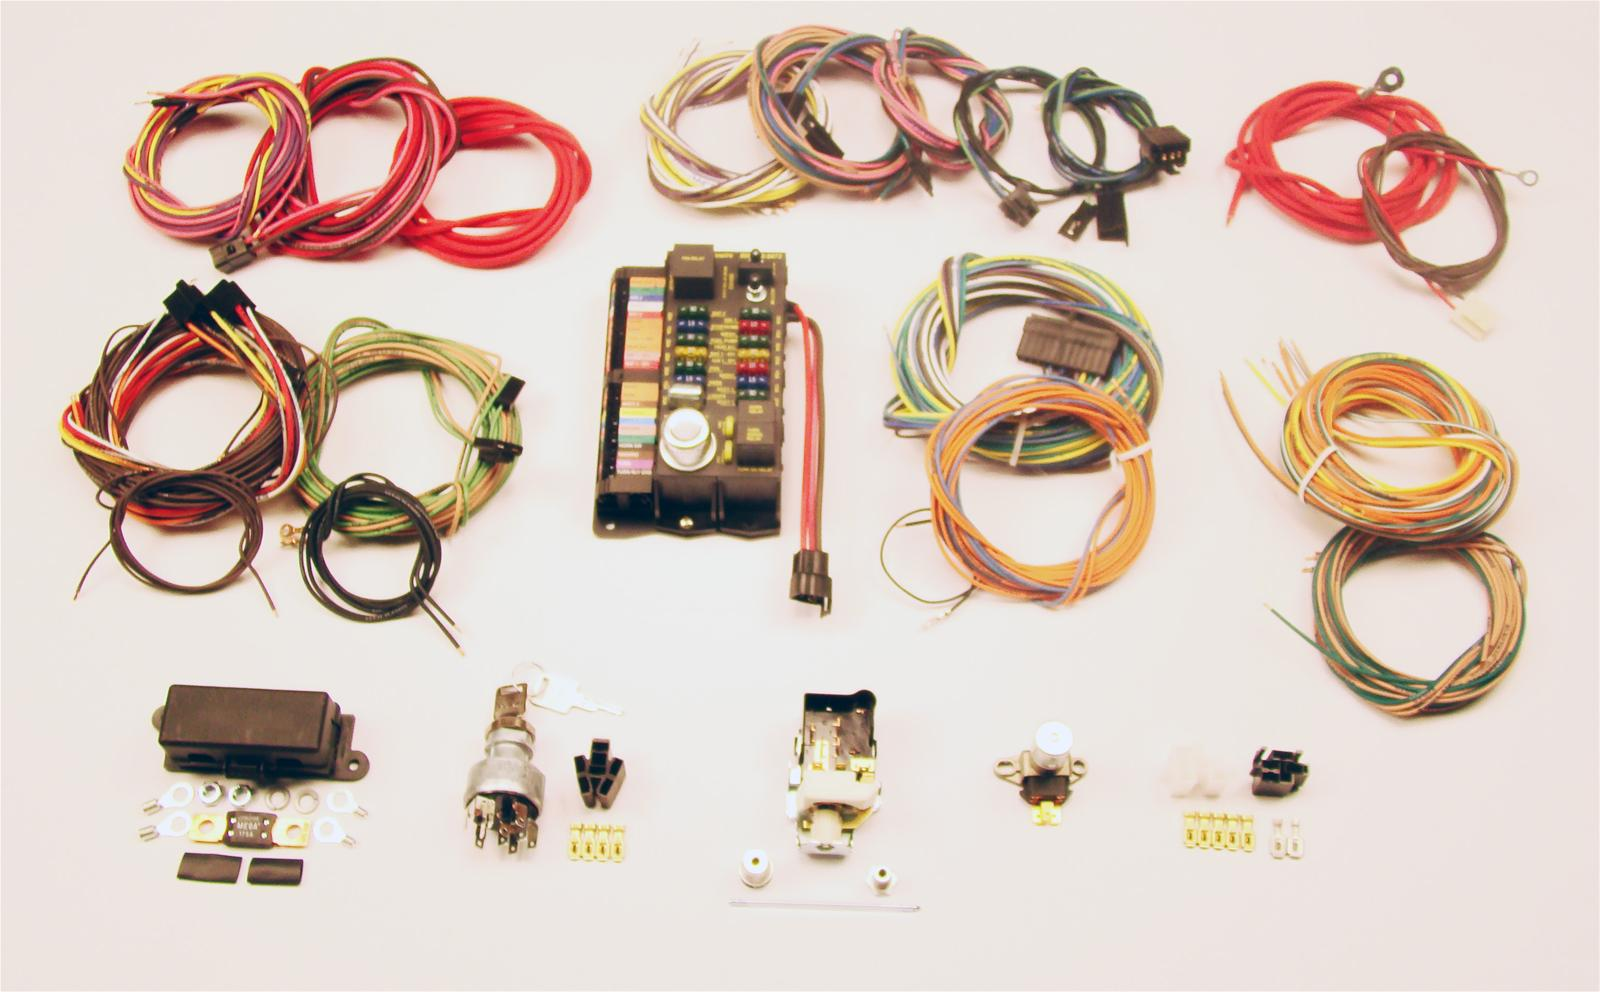 hight resolution of american autowire highway 22 wiring harness kits 500695 free shipping on orders over 99 at summit racing